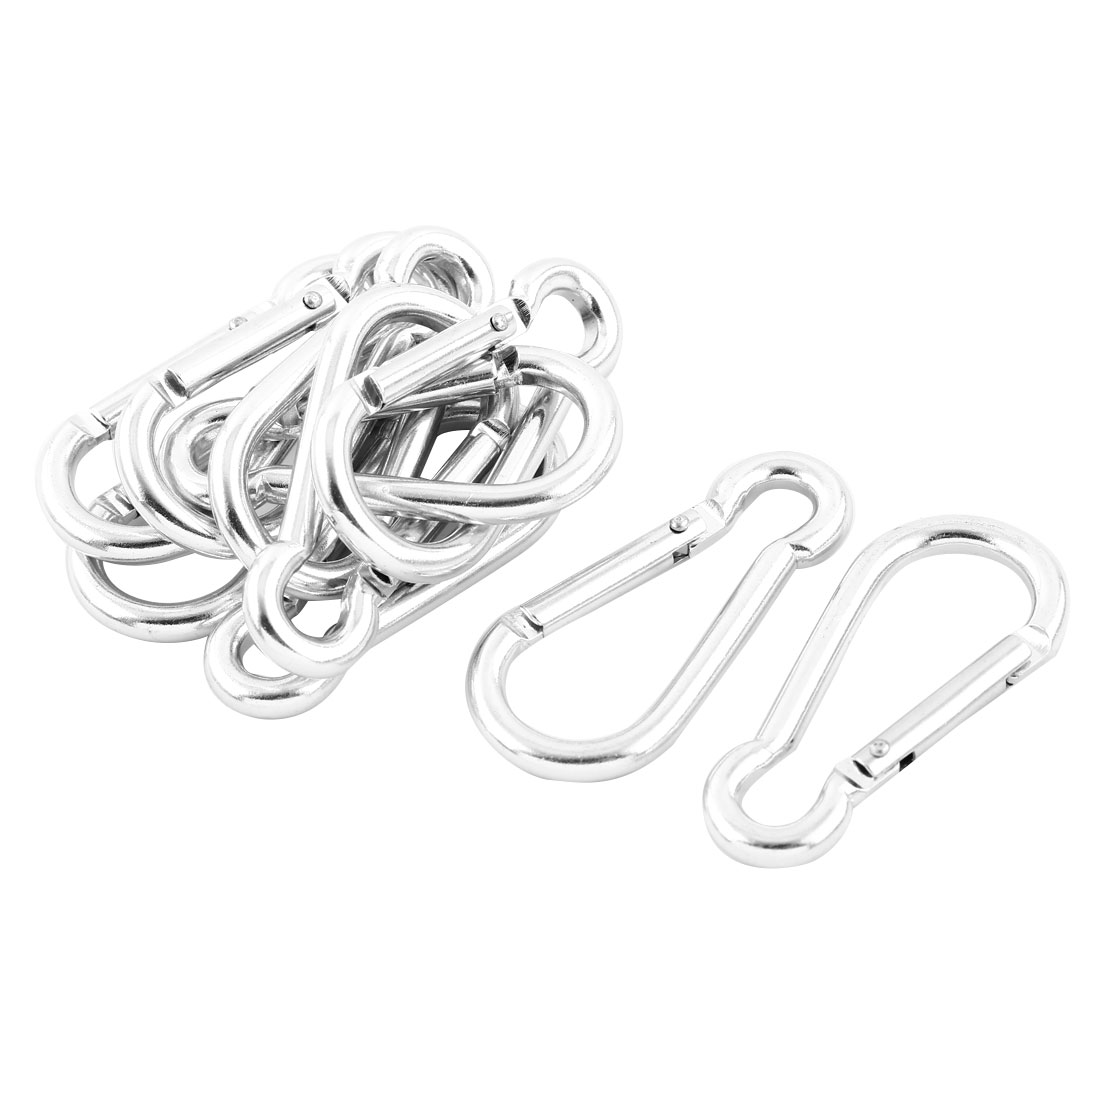 60mm Long Spring Loaded Lock Silver Tone Alloy Safety Carabiner Hook 10pcs